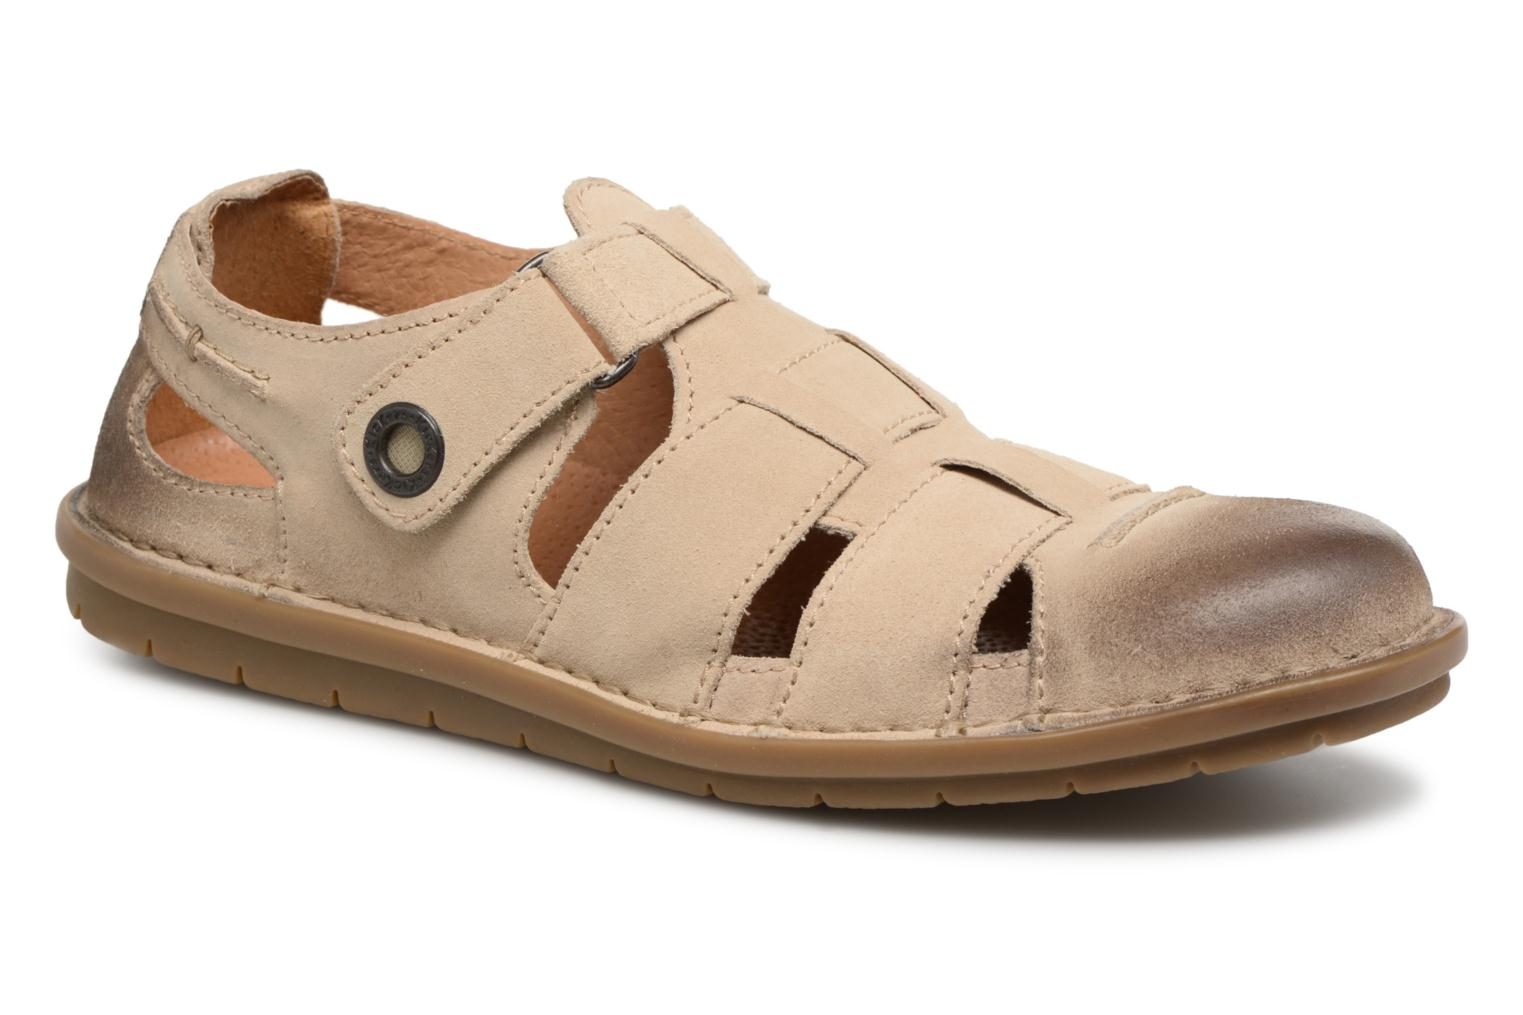 Marques Chaussure homme Kickers homme Vidal 114 CAMEL